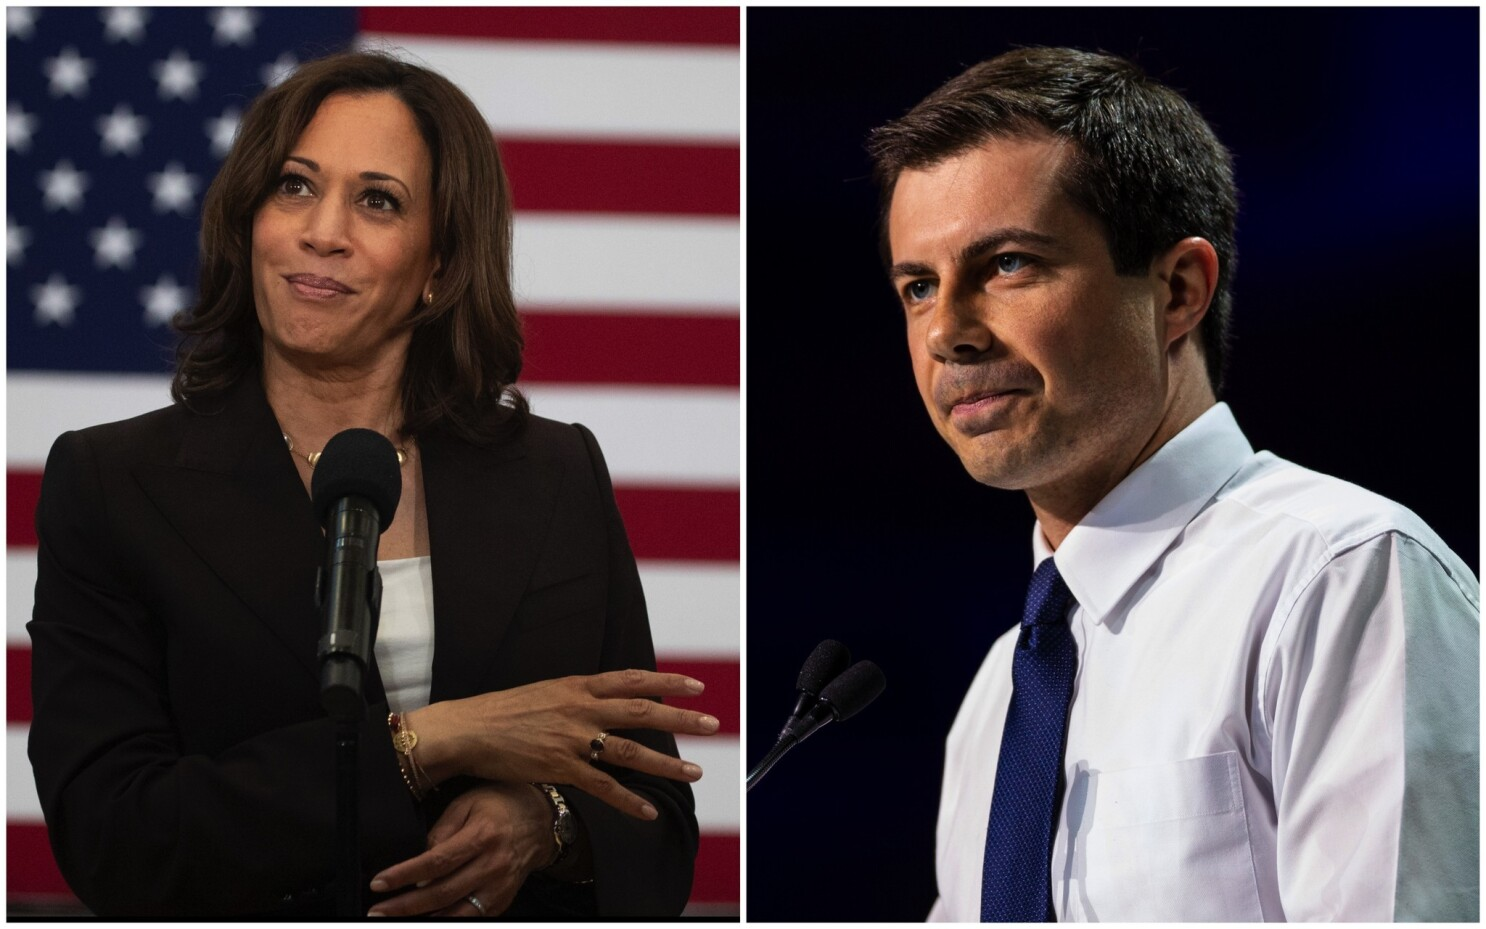 A surging Harris lags in fundraising, while Buttigieg leads the Democratic pack - Los Angeles Times